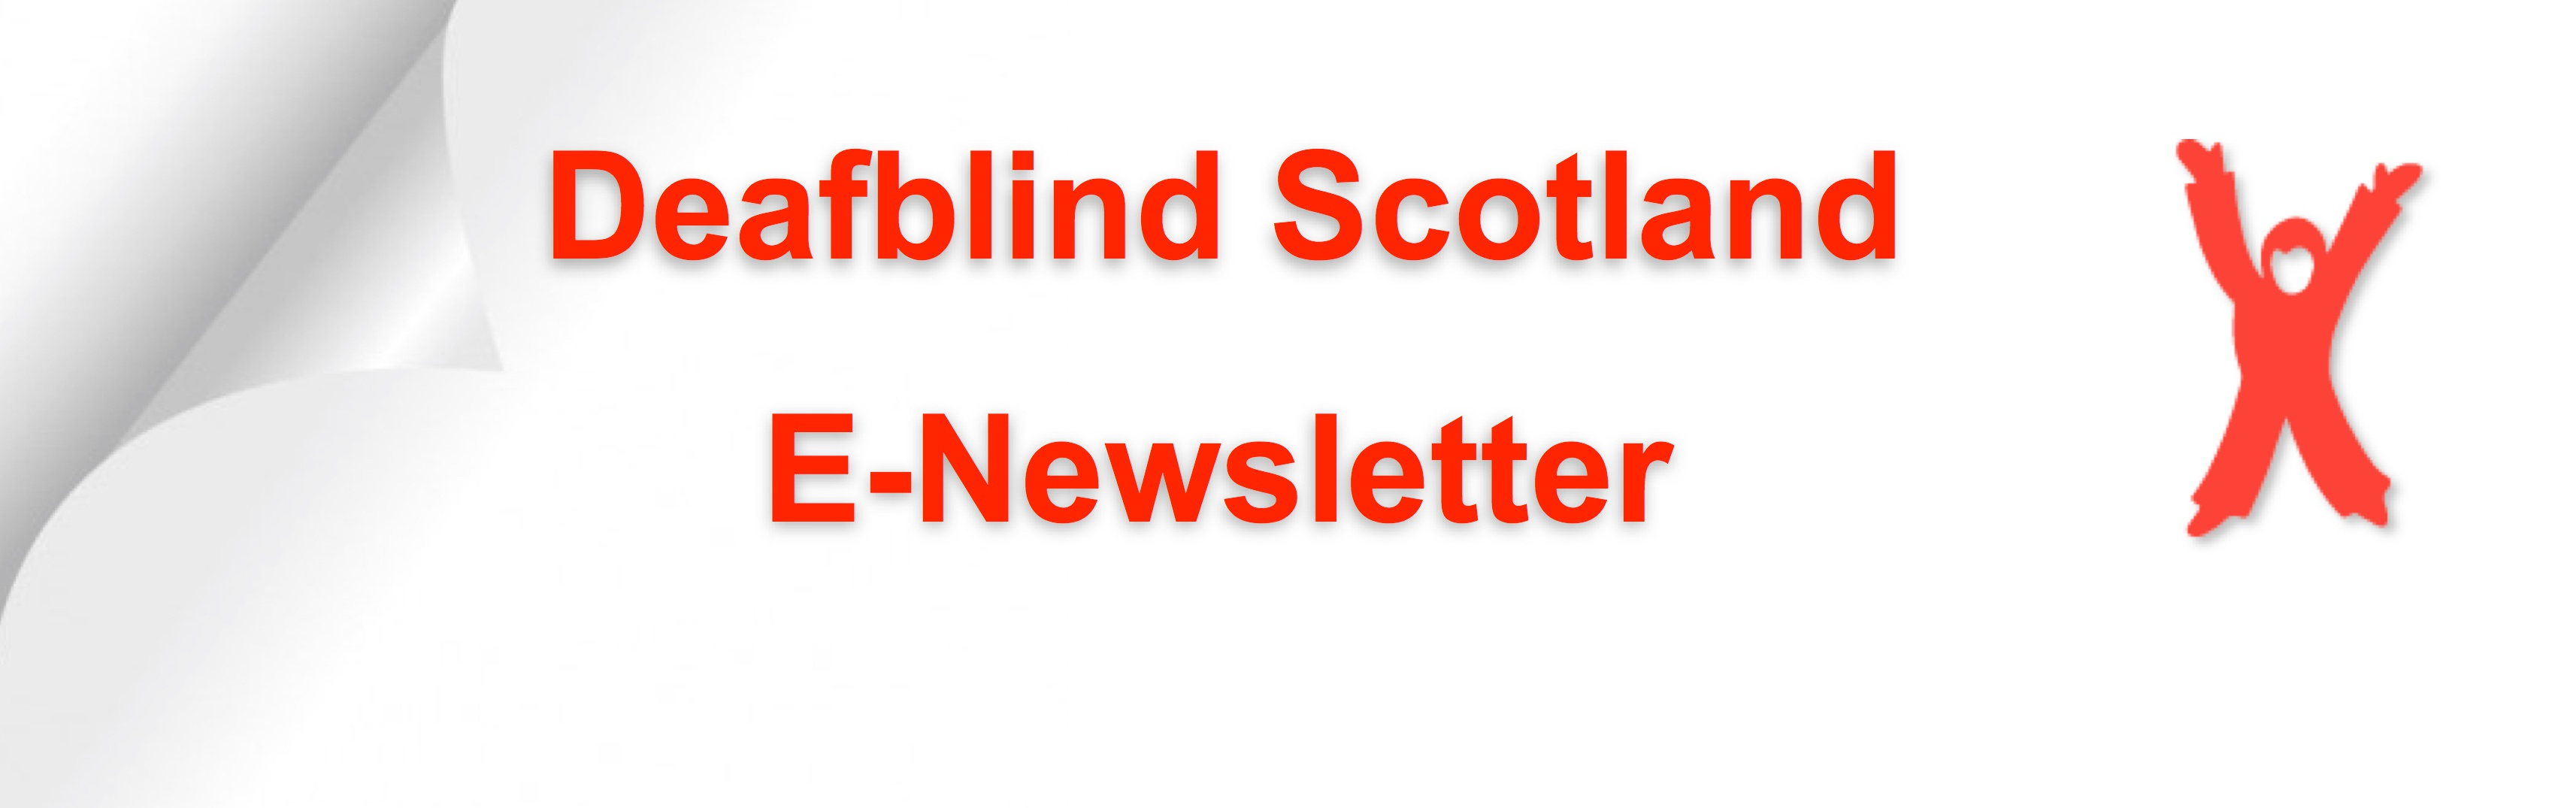 Deafblind Scotland E-Newsletter